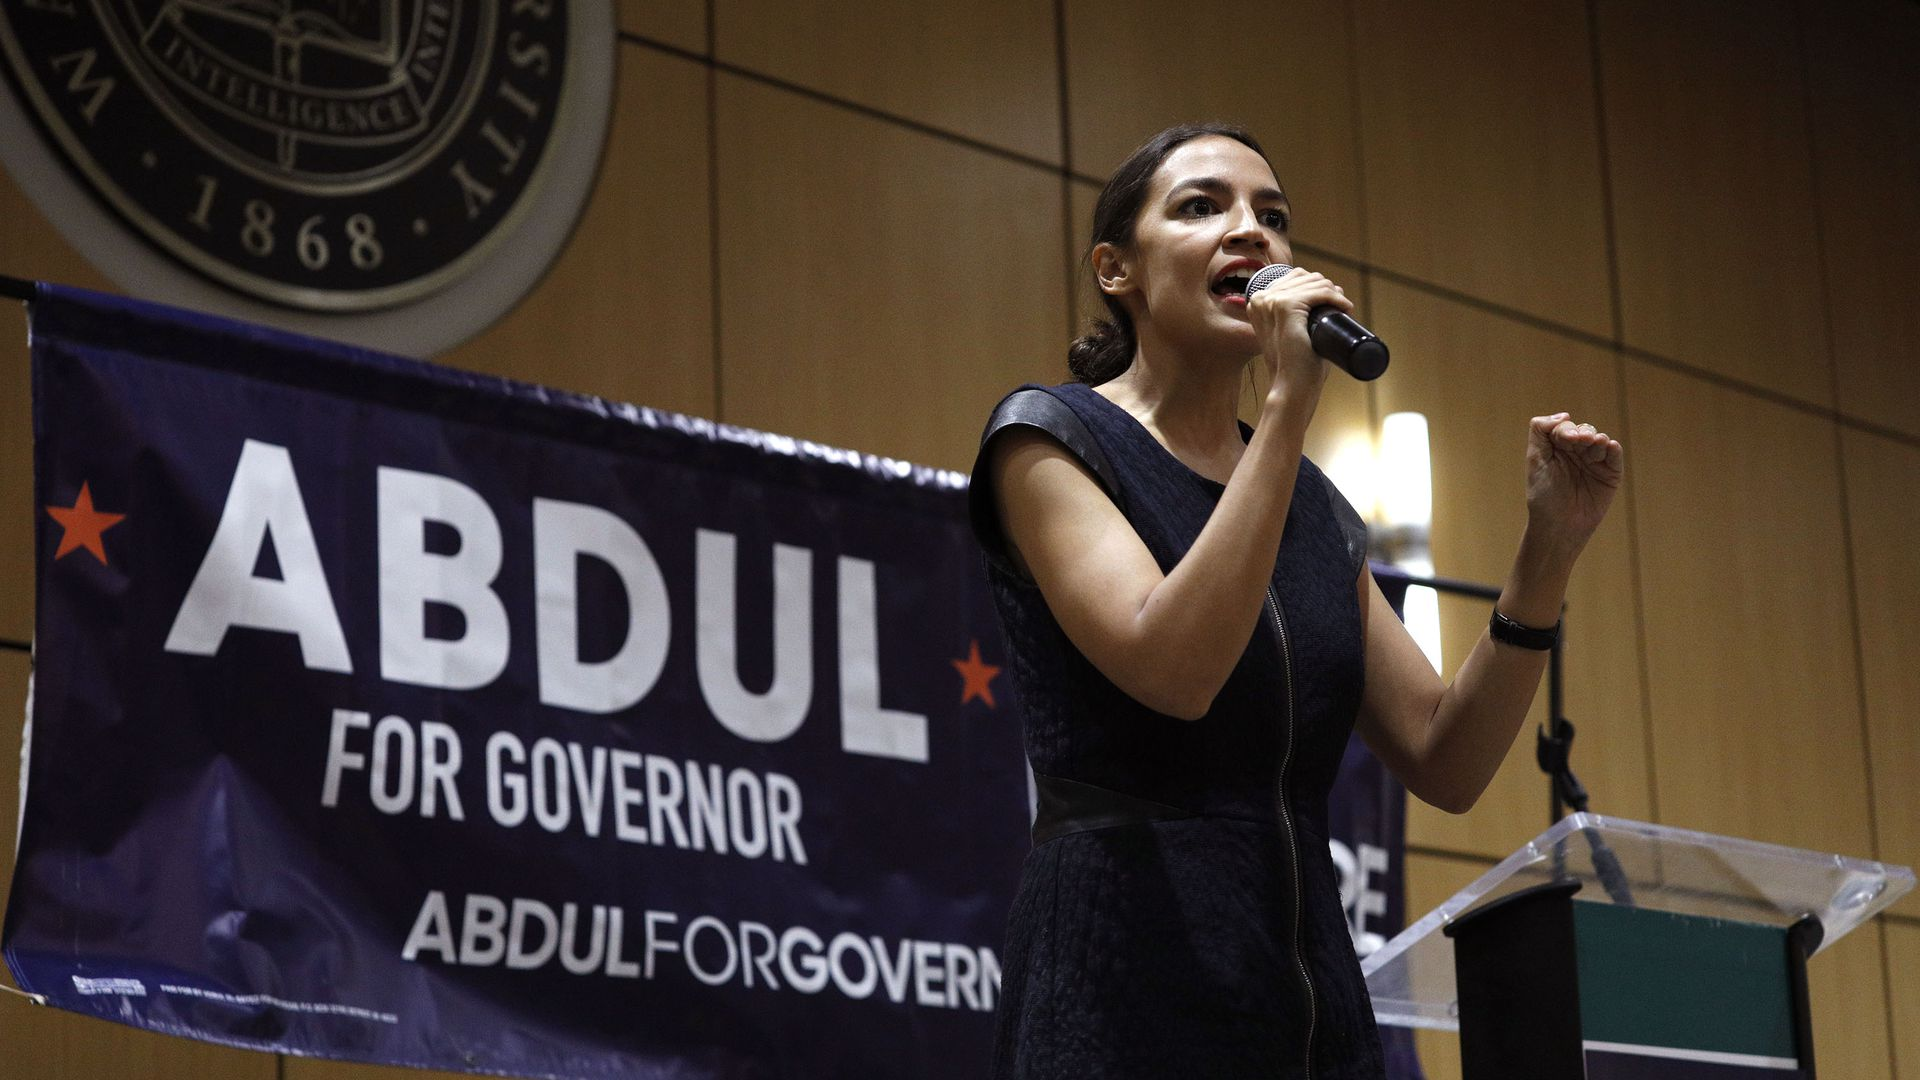 Alexandria Ocasio-Cortez on stage in front of an Abdul for Governor poster